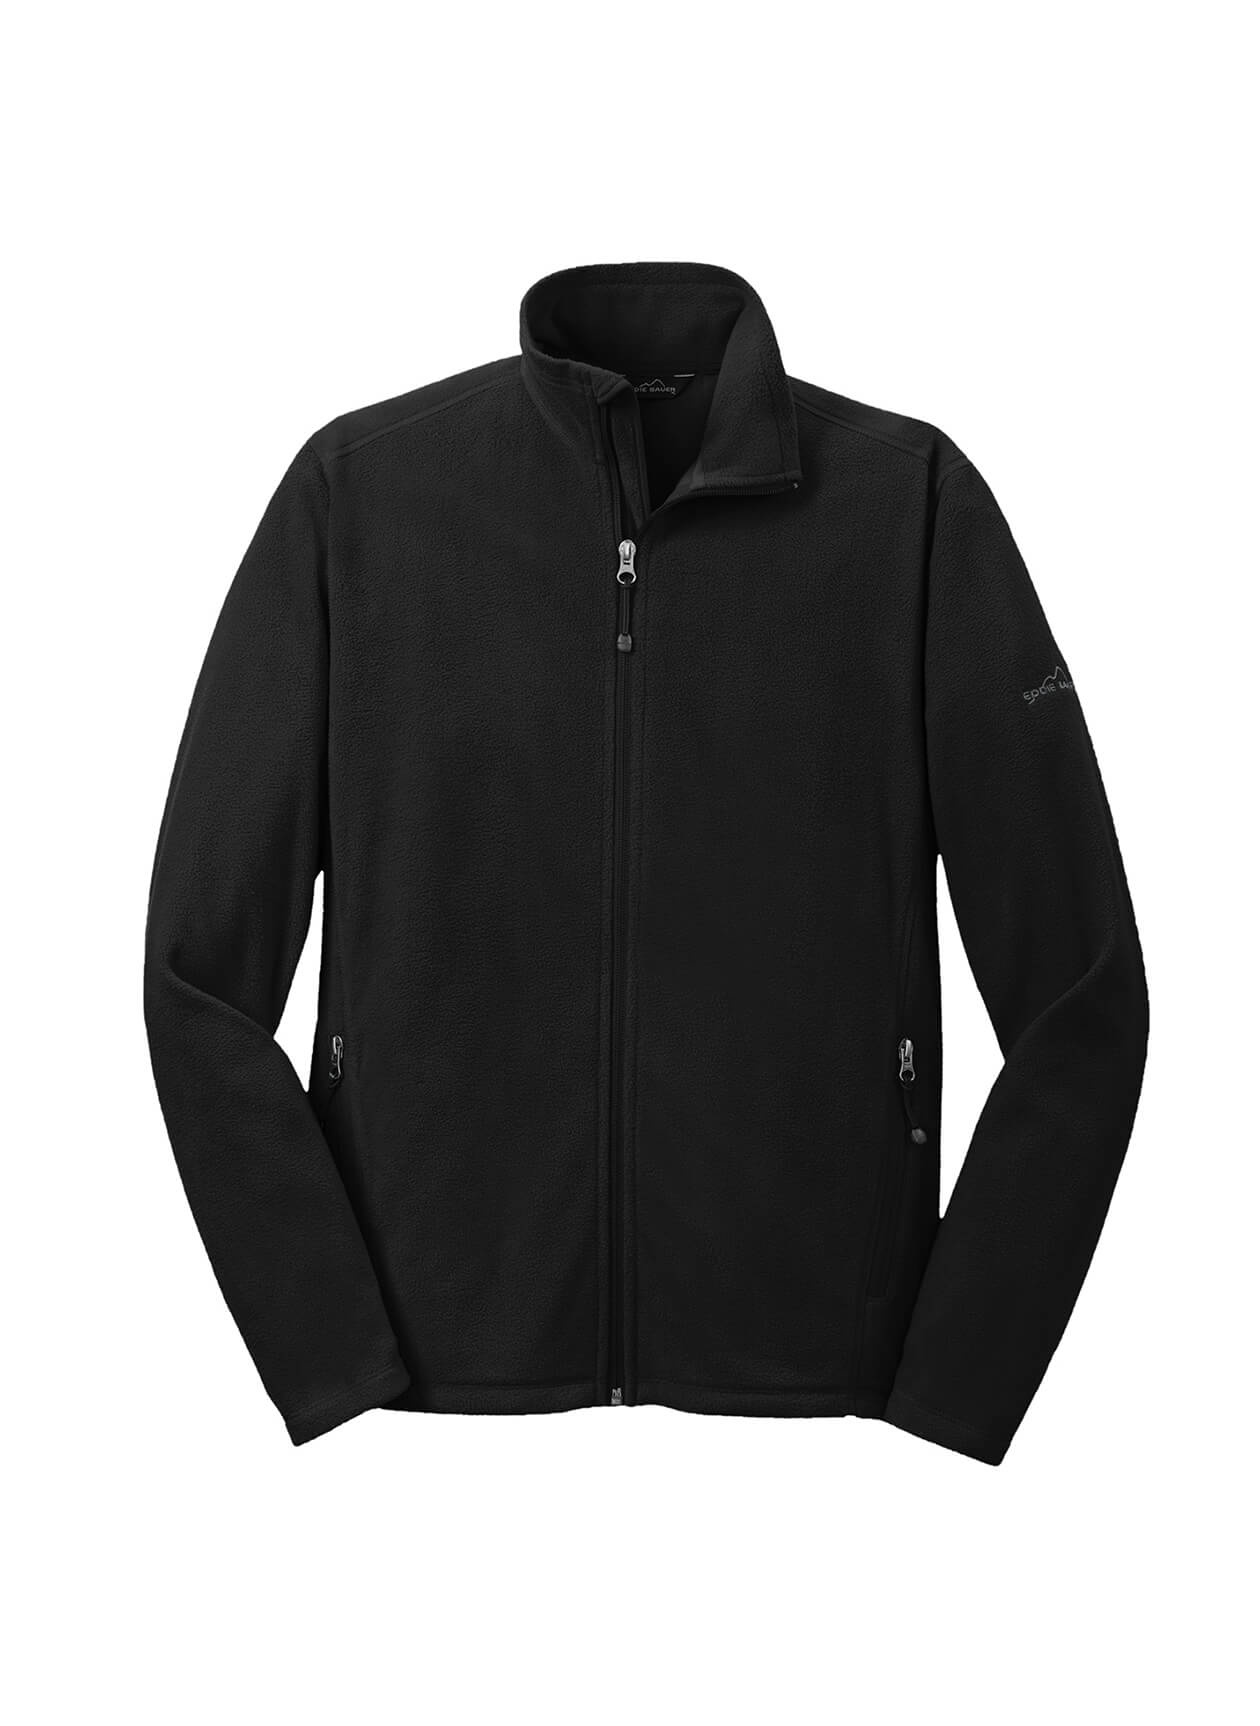 Eddie Bauer Men's Full-Zip Micro Fleece Jacket